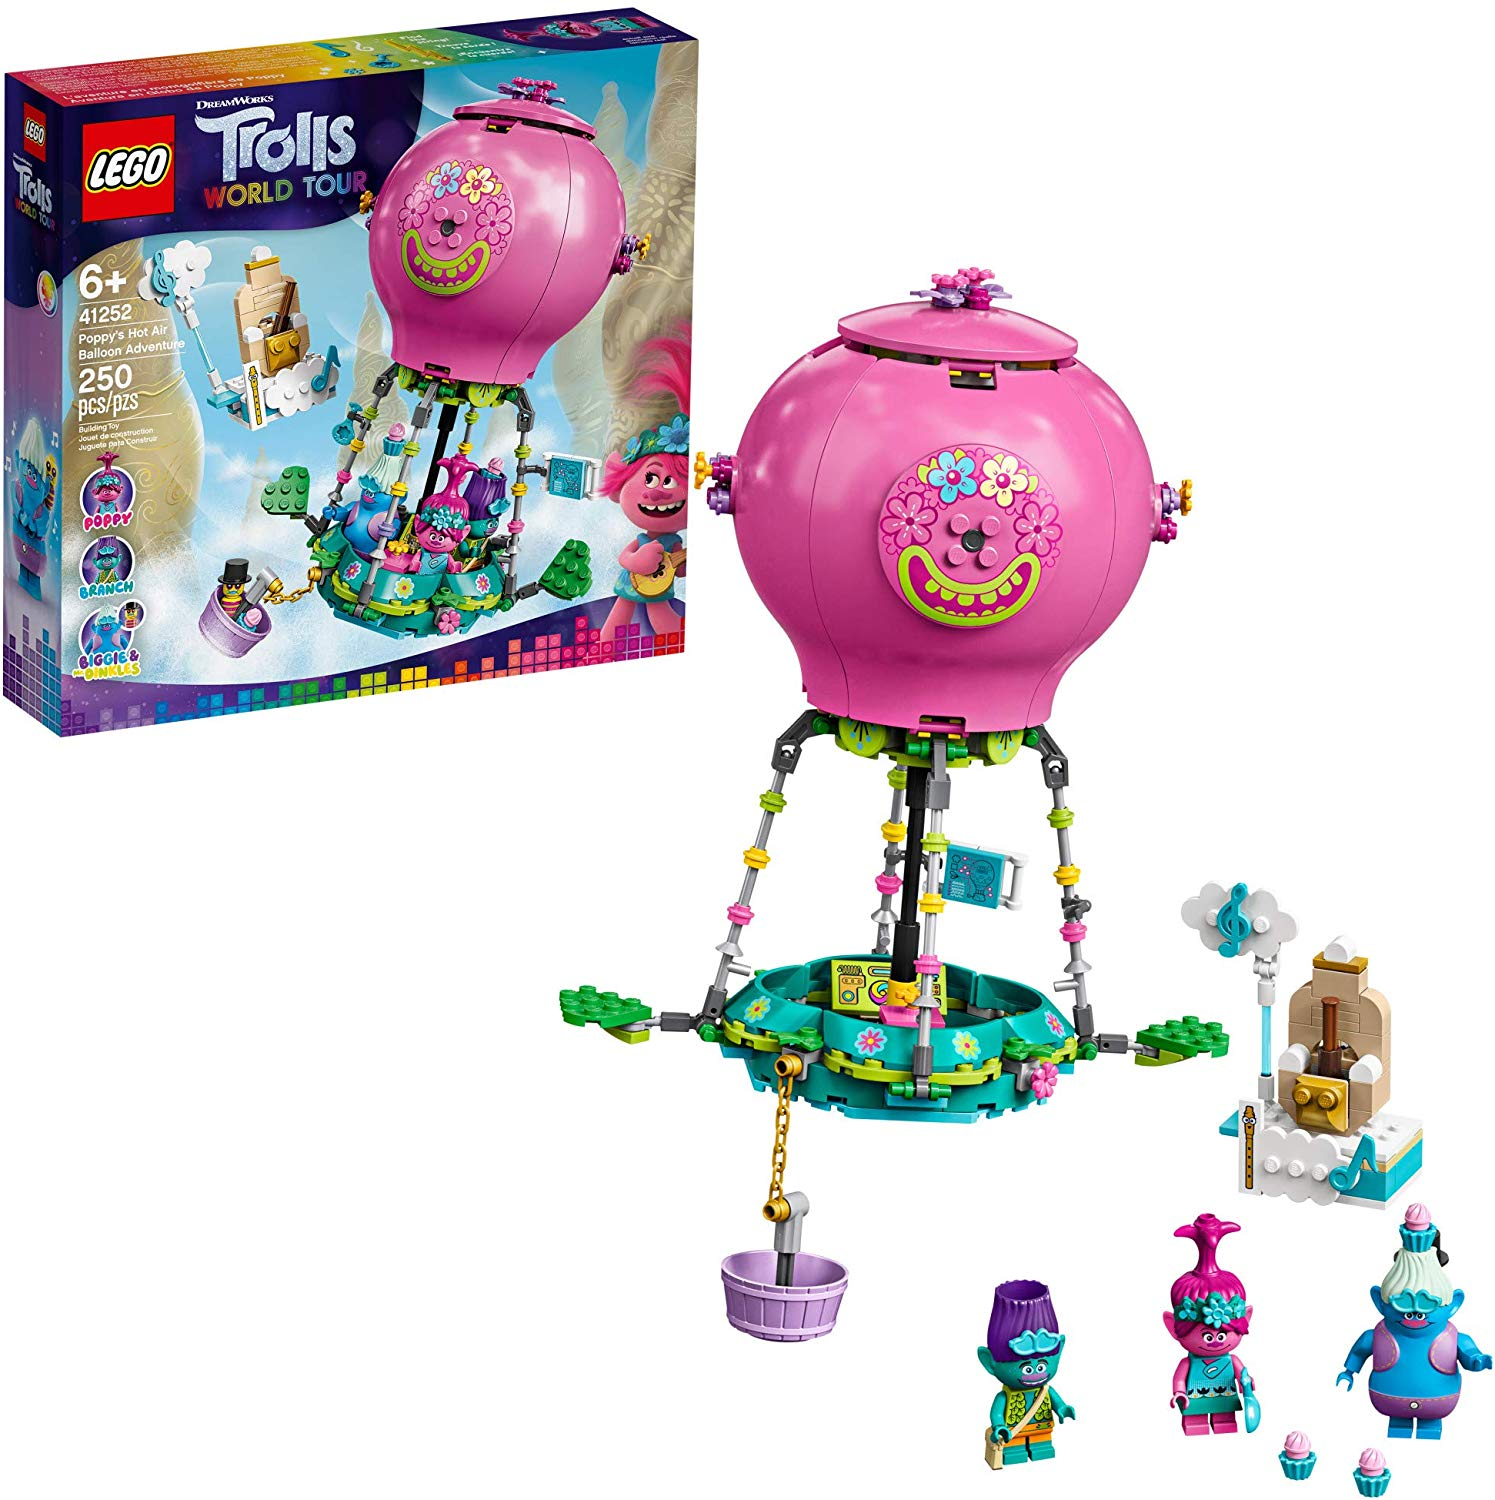 LEGO Trolls World Tour Poppy's Hot Air Balloon Adventure 41252, New 2020 (250 Pieces)